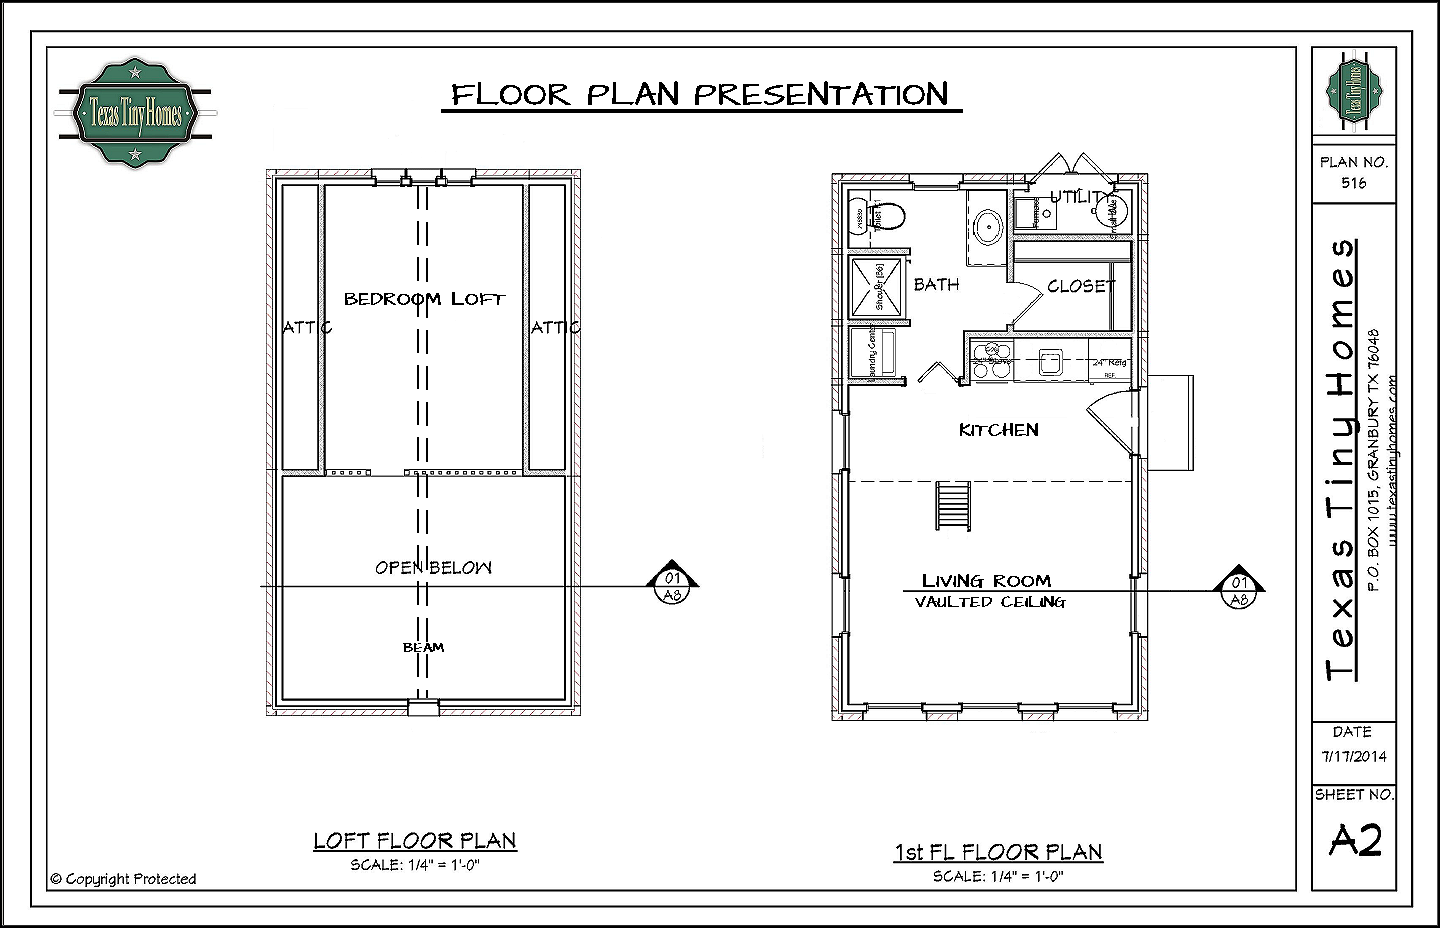 Texas tiny homes plan 516 for Micro home designs